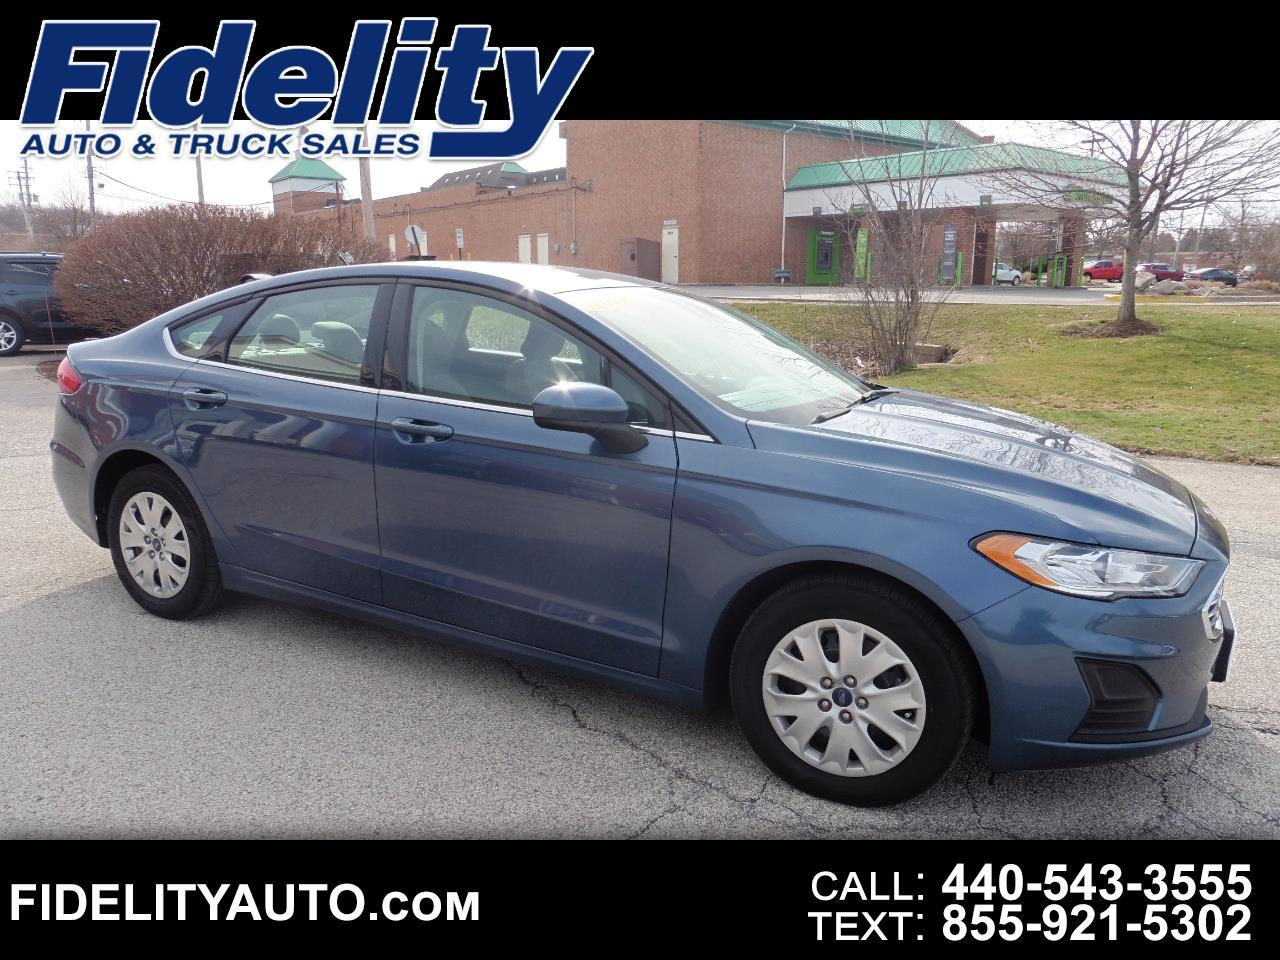 Ford Fusion 4dr Sdn I4 S FWD 2019